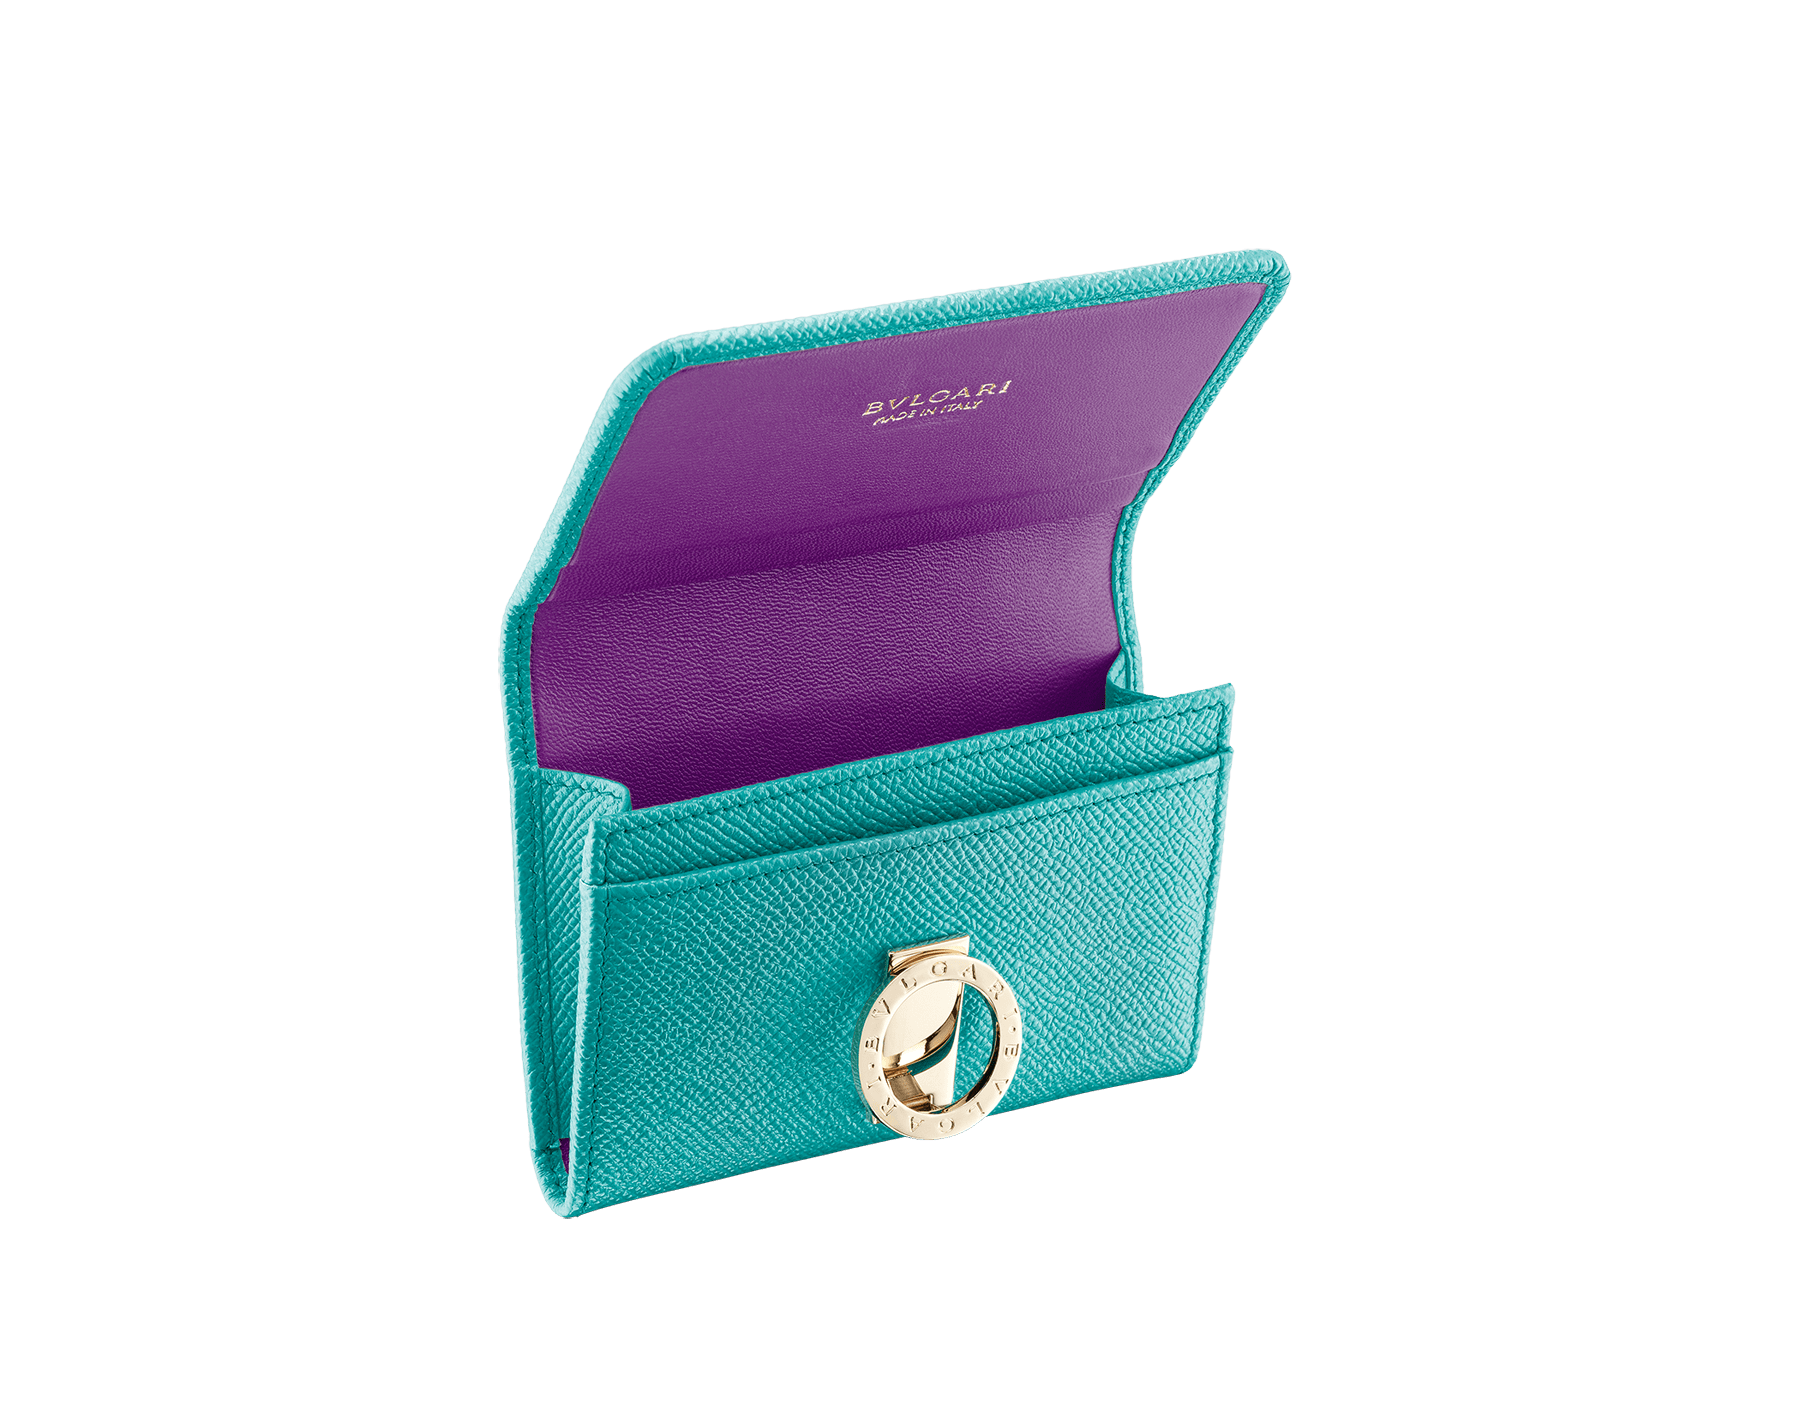 BVLGARI BVLGARI business card holder in arctic jade grain calf leather and grape amethyst nappa leather. Iconic logo closure clip in light gold plated brass. 289037 image 2